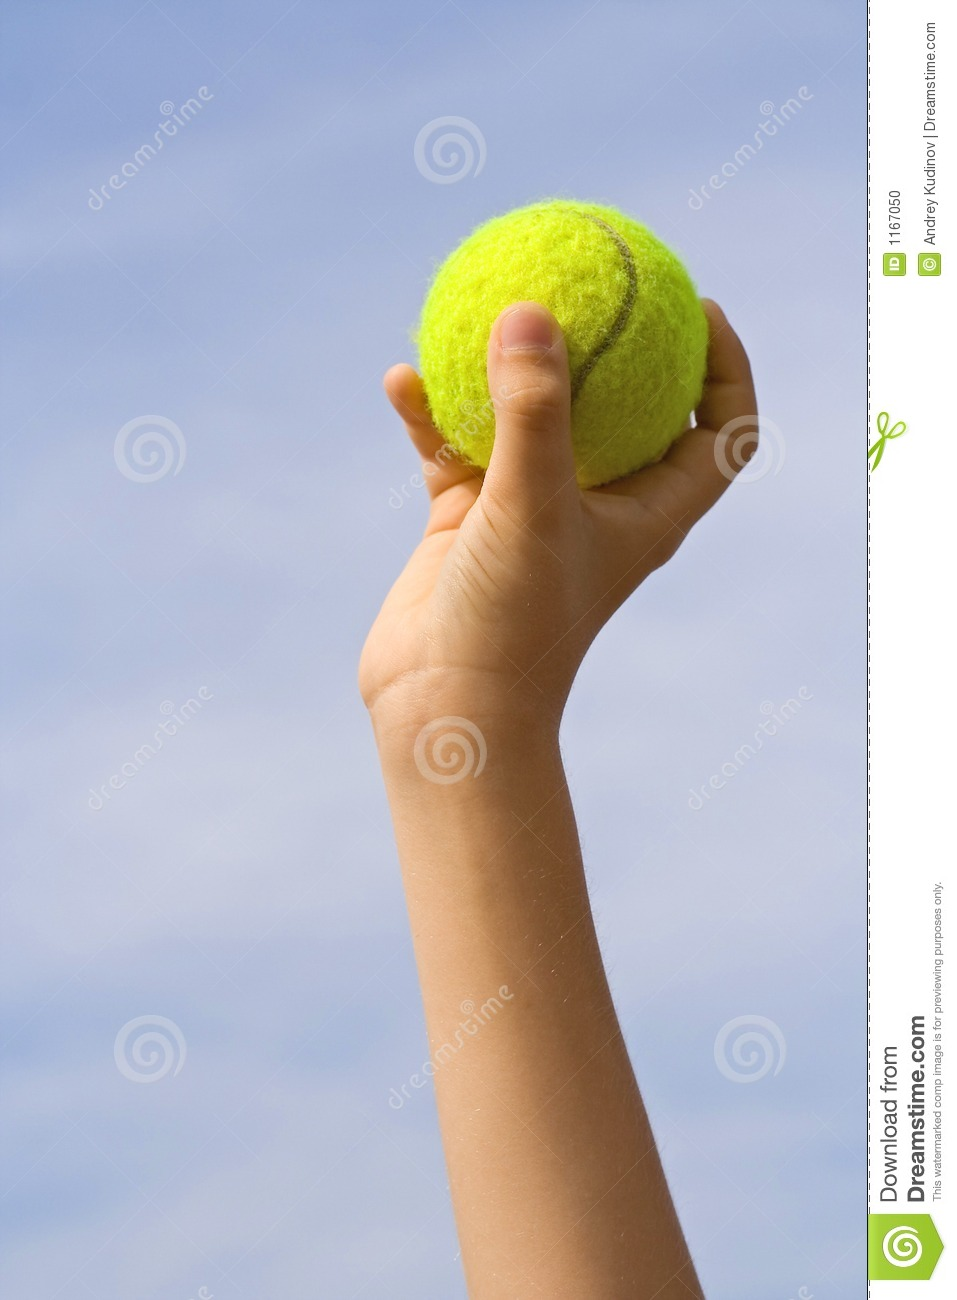 Catch The Ball Stock Photo Image 1167050